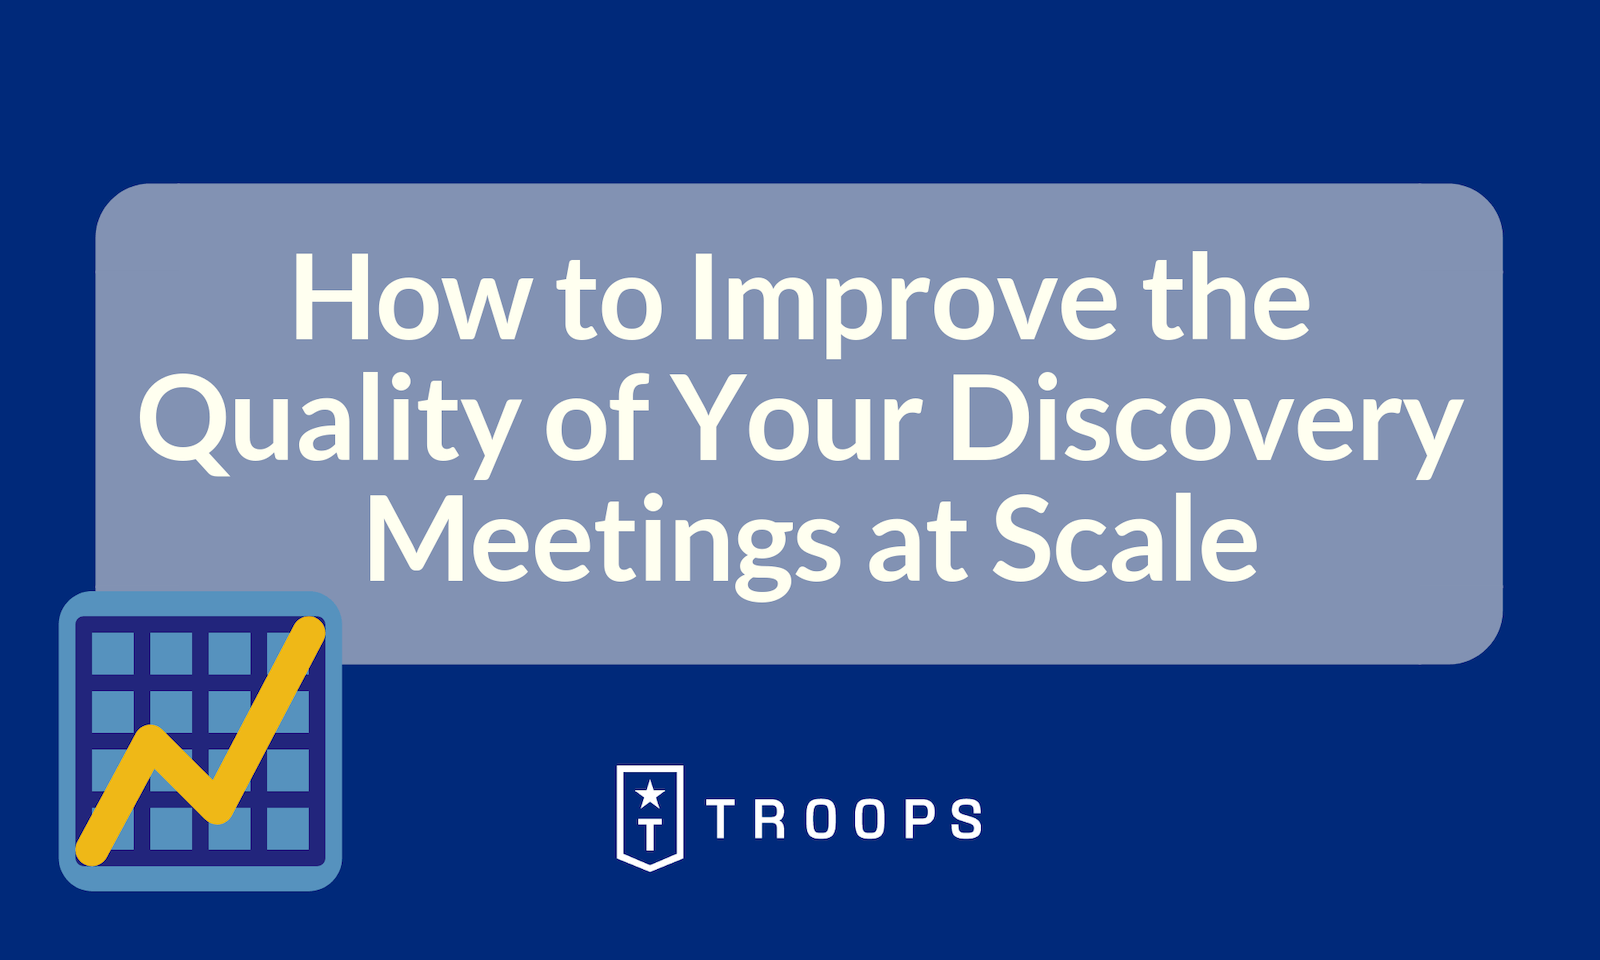 How to Improve the Quality of Your Discovery Meetings at Scale